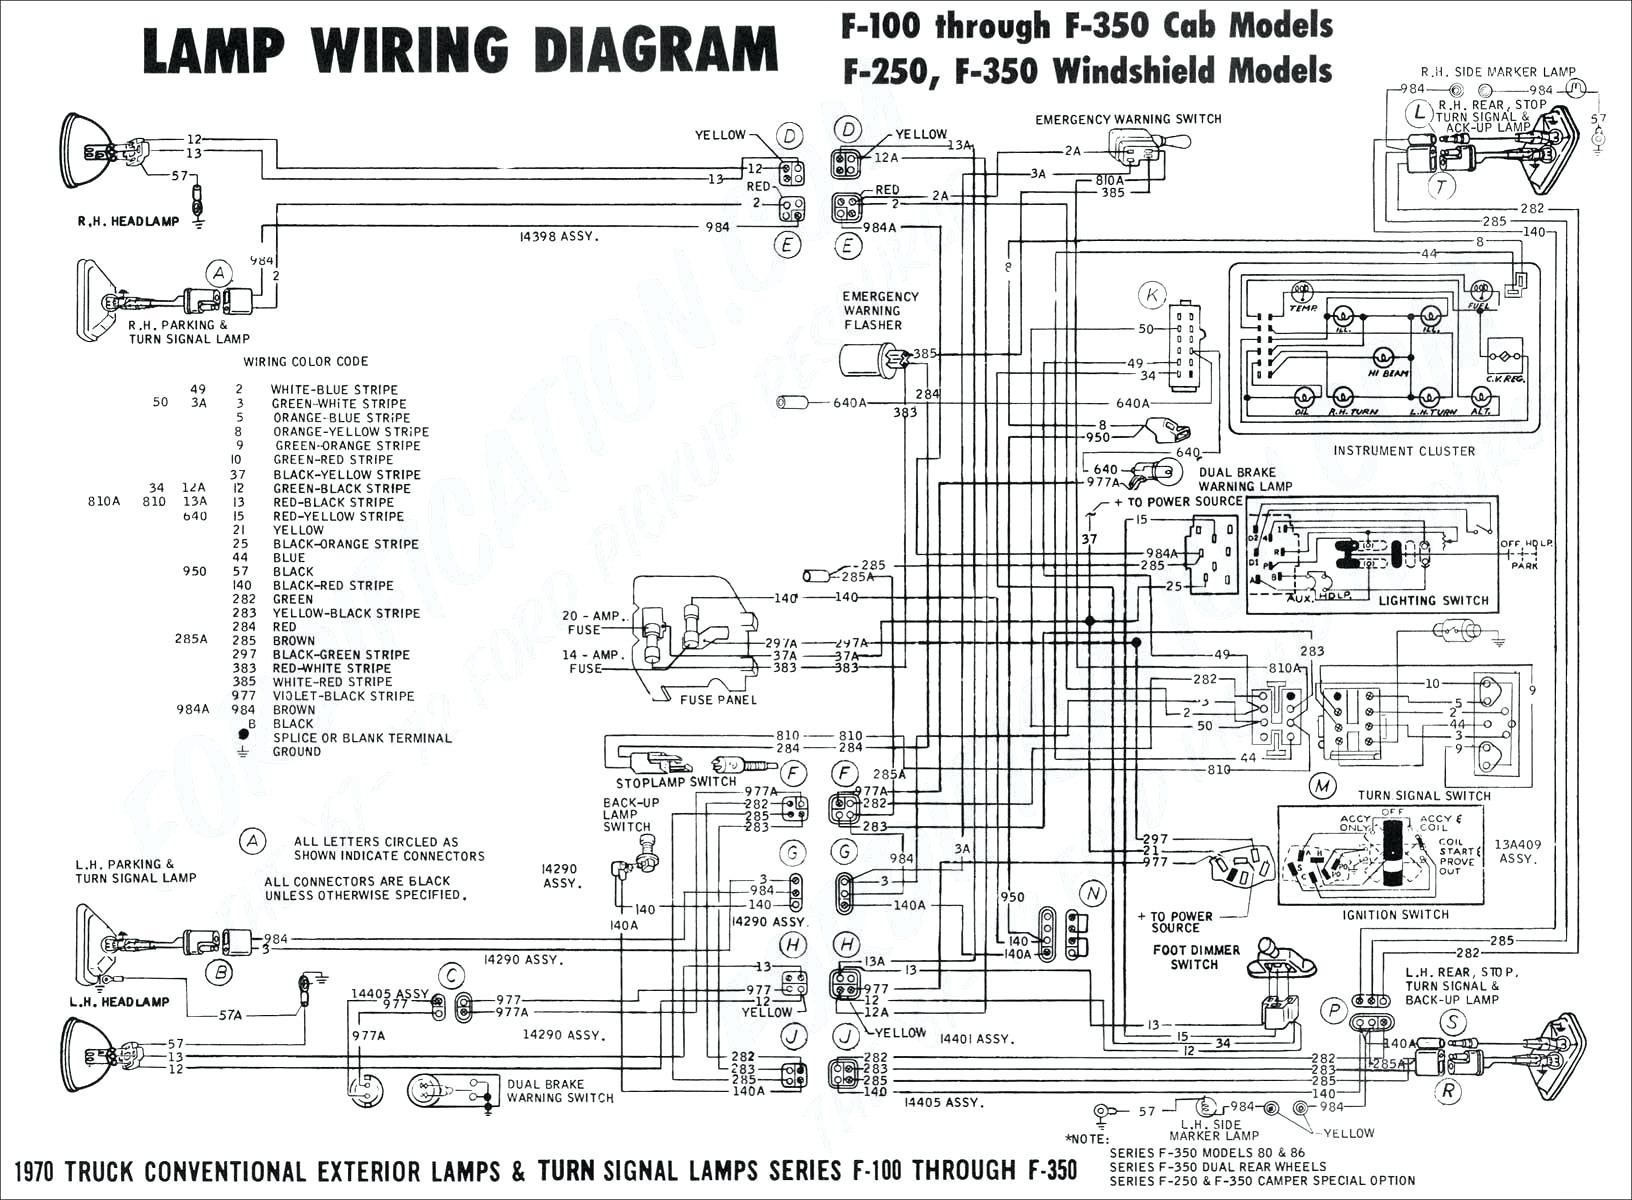 tail light wiring diagram ford f150 wiring diagram for automotive lights new stop turn tail light wiring diagram beautiful 1979 ford f150 17r